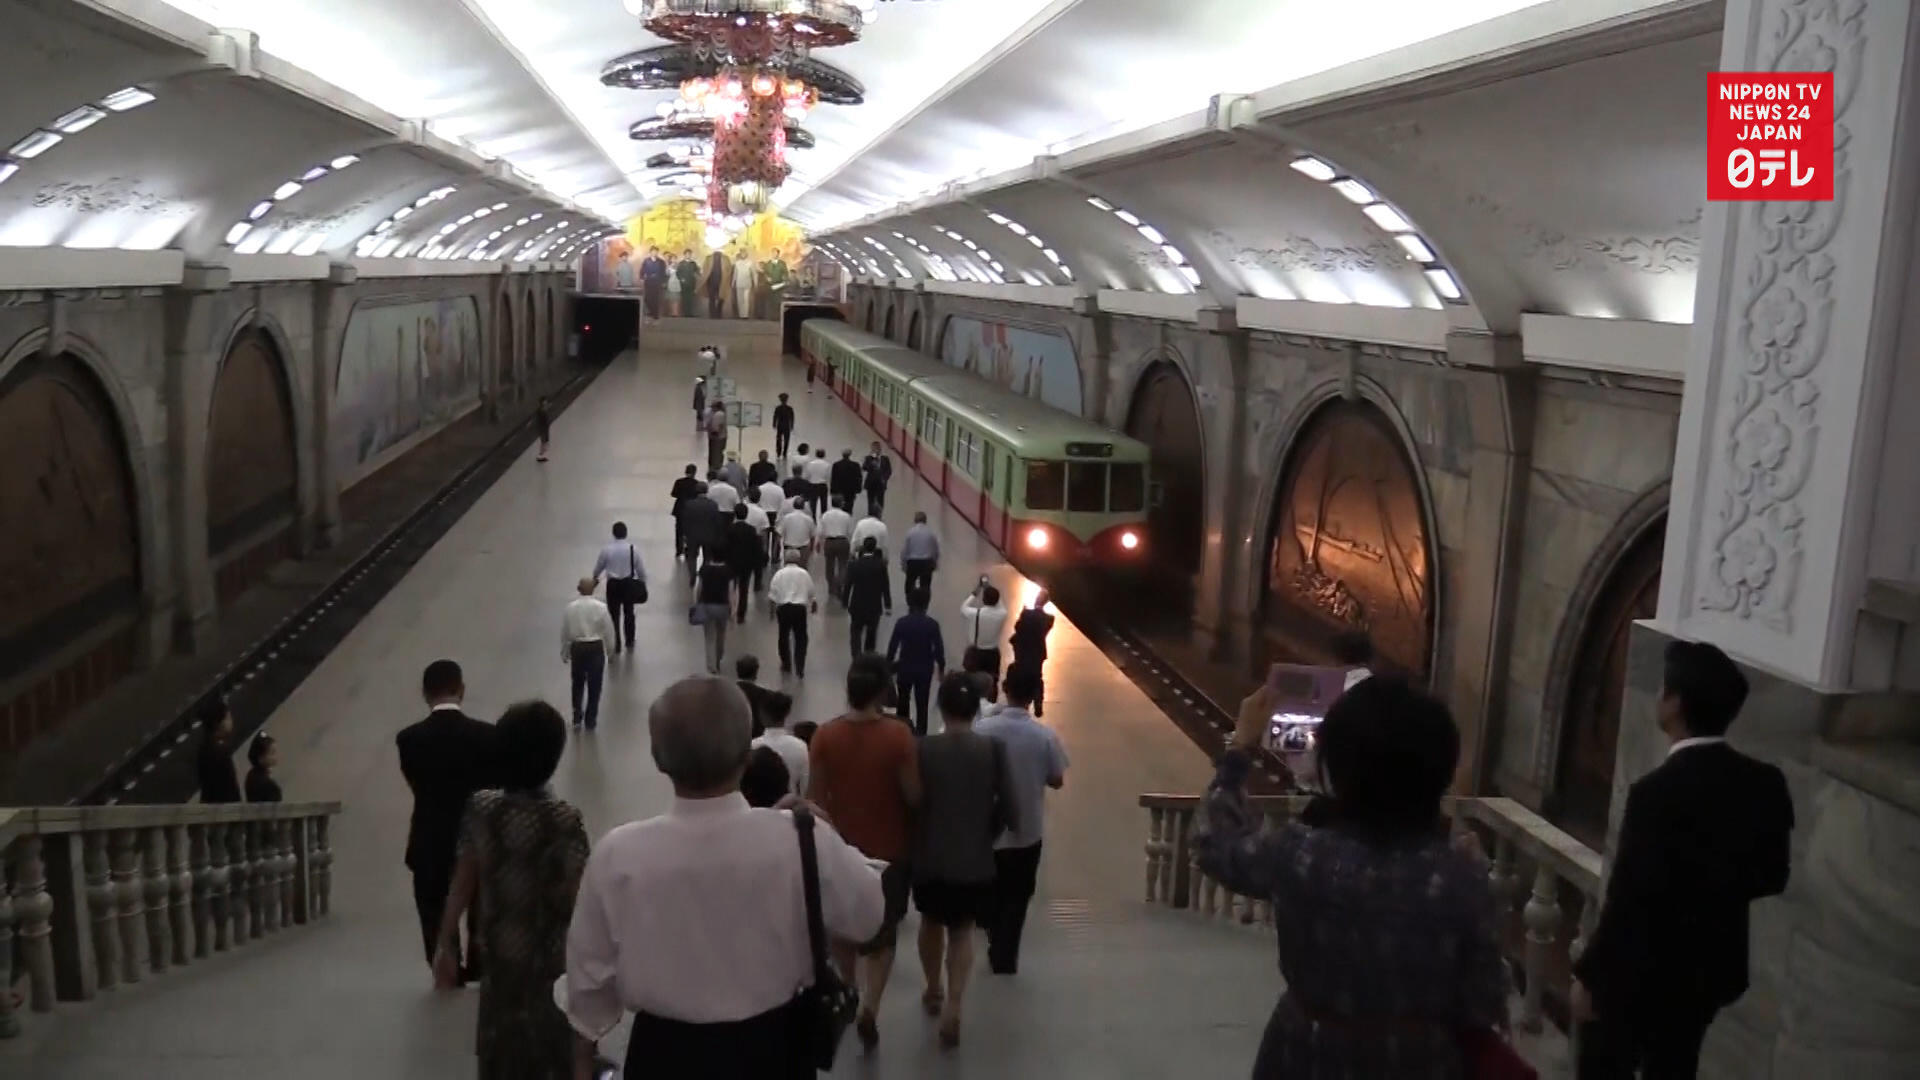 Video of diplomatic ceremony and subway in North Korea